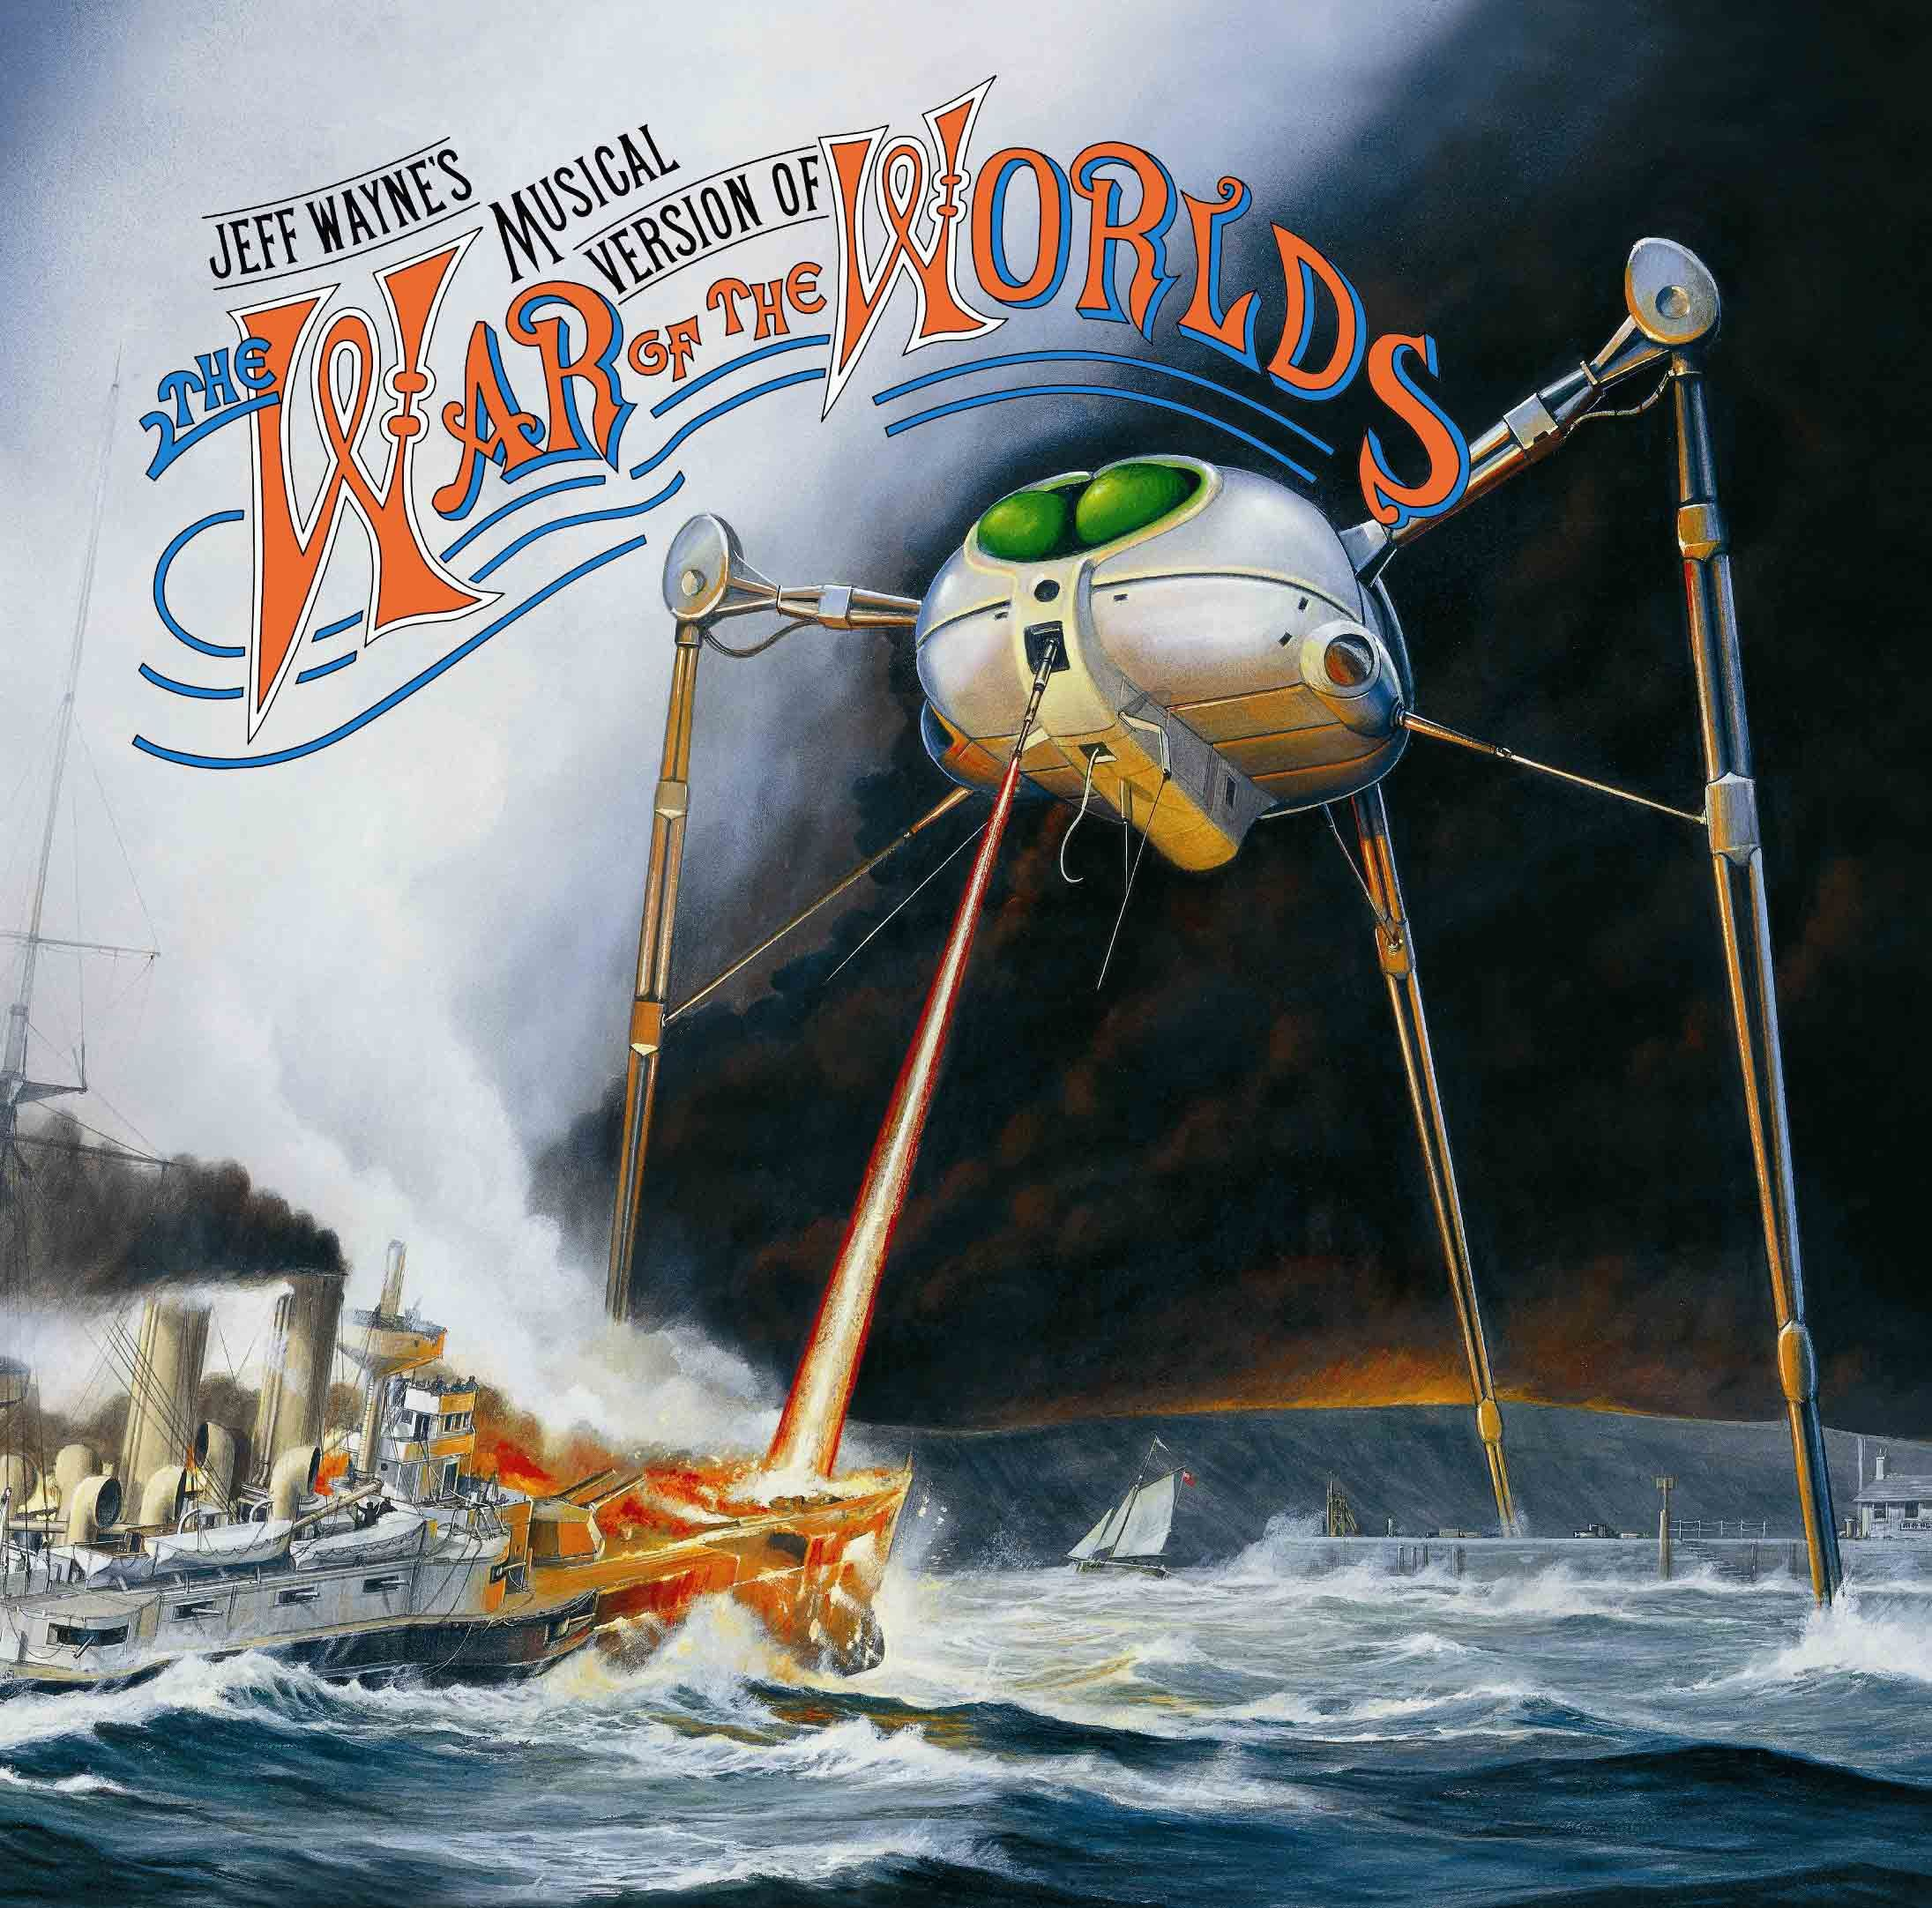 Jeff Wayne S Musical Version Of The War Of The Worlds Columbia 1978 War Of The Worlds Album Covers Classic Album Covers